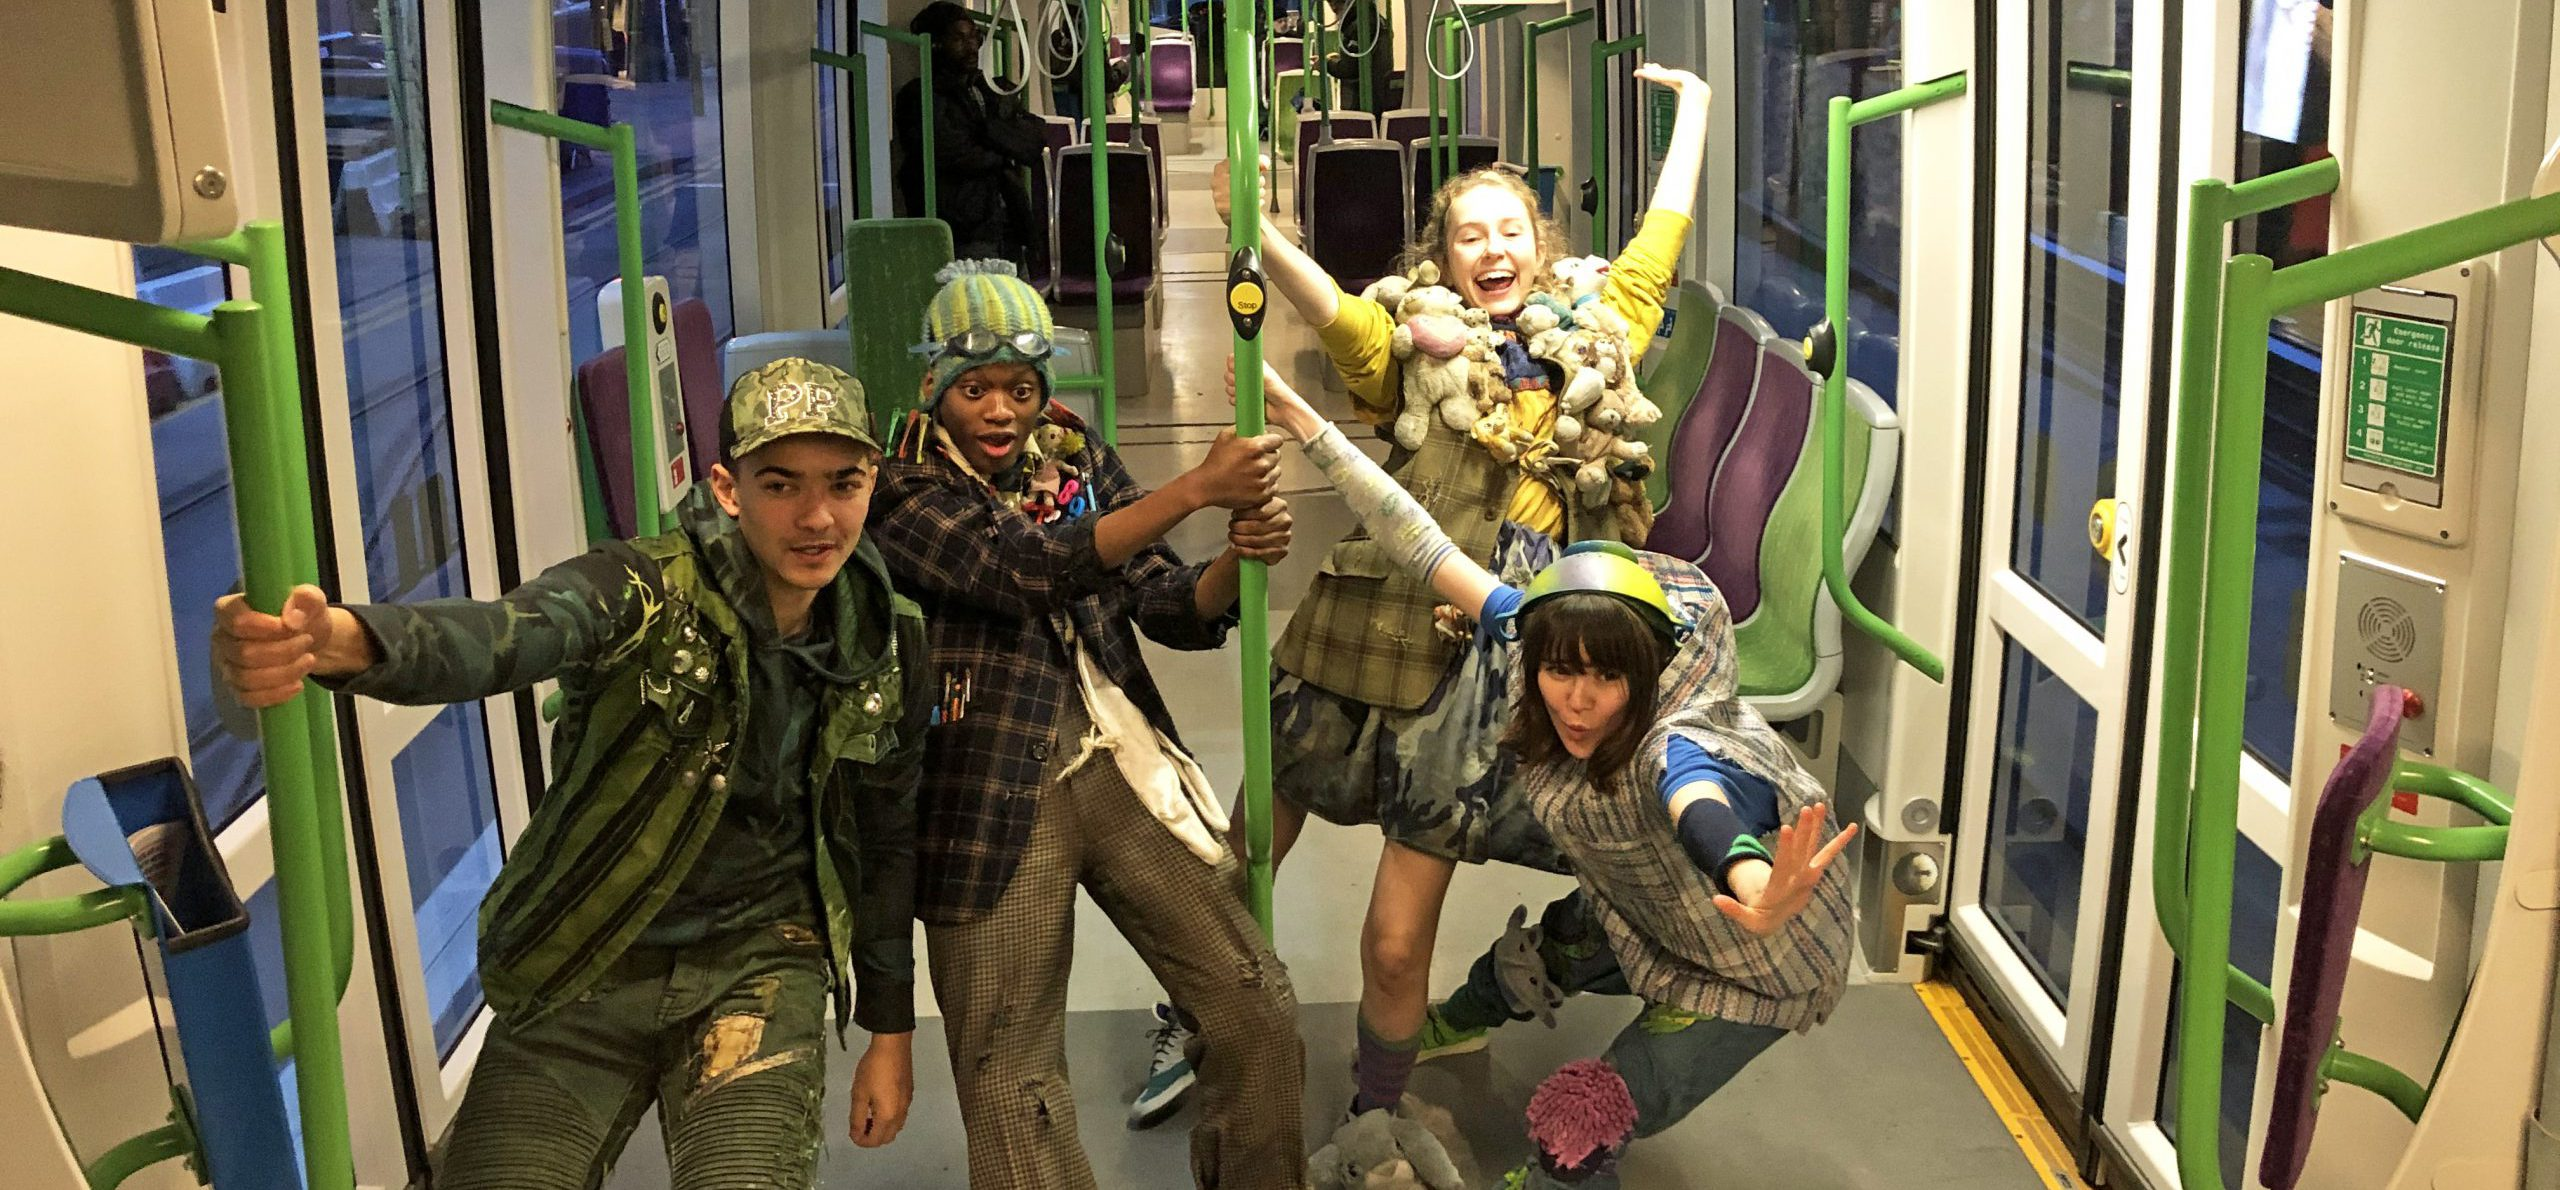 Newly Opened Tram Stop Takes Passengers All The Way To Neverland